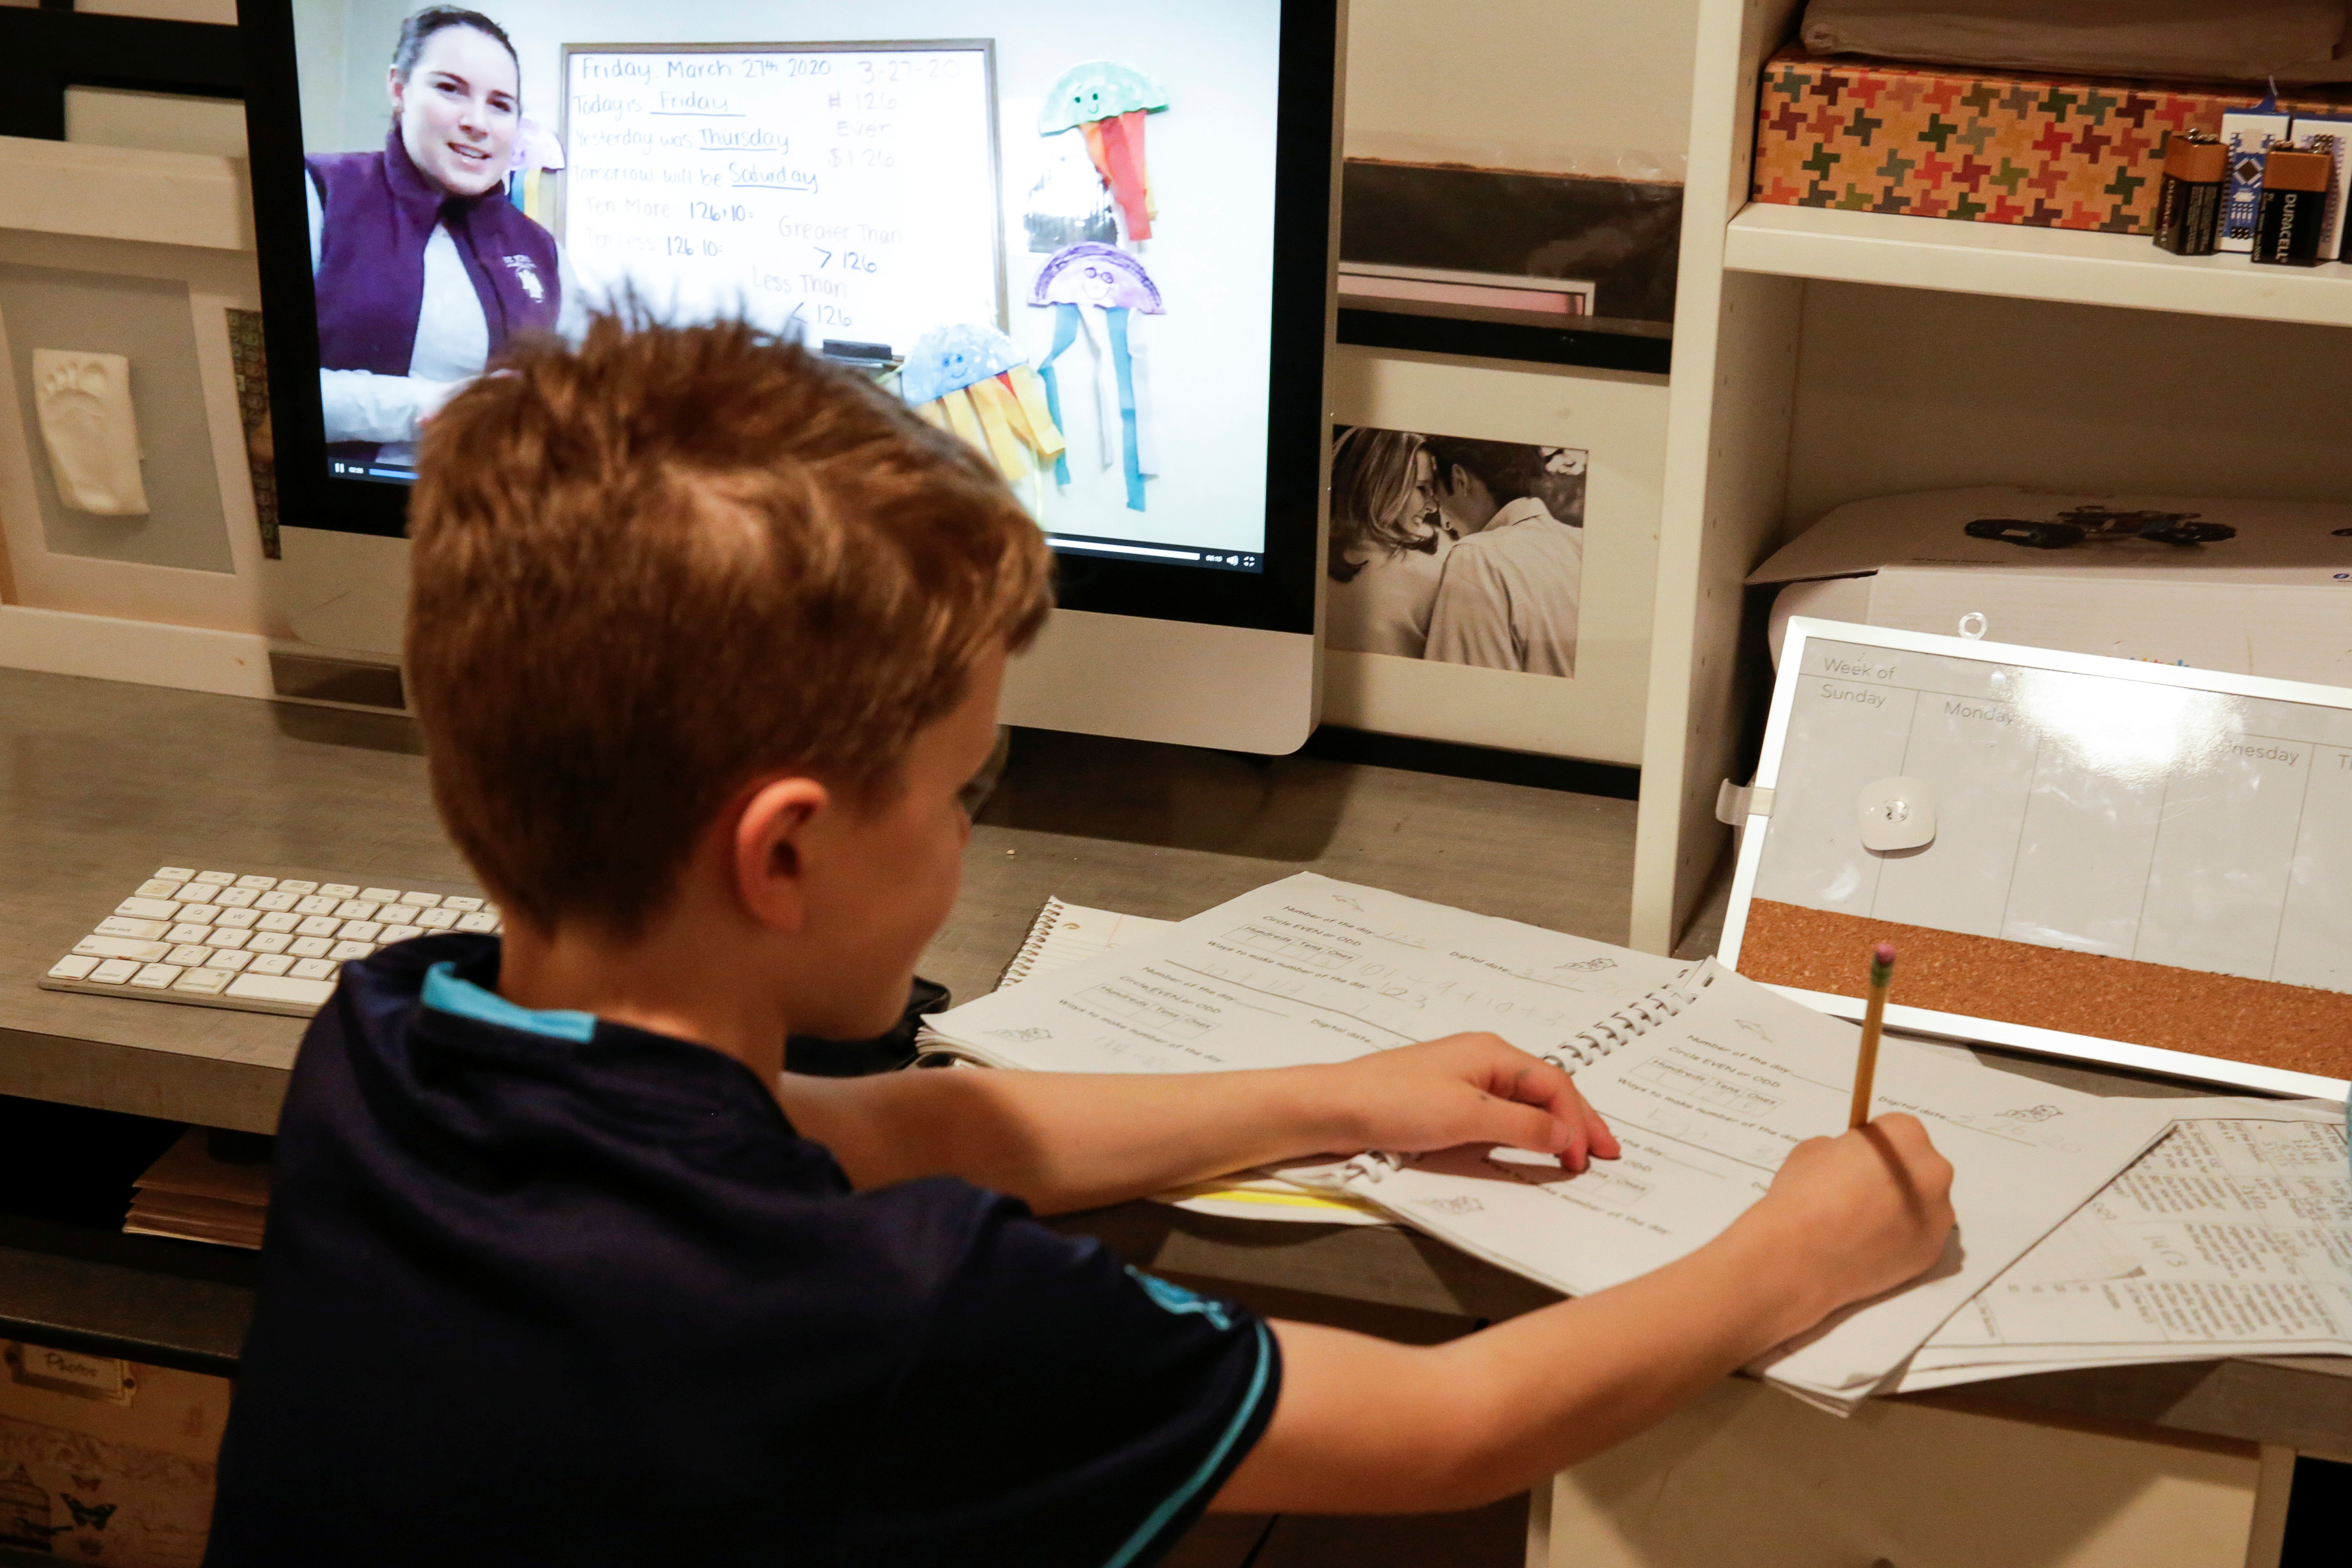 Oakes McClenahan, 7, does his school work as he watches his teacher's recorded lesson on a computer in Washington.